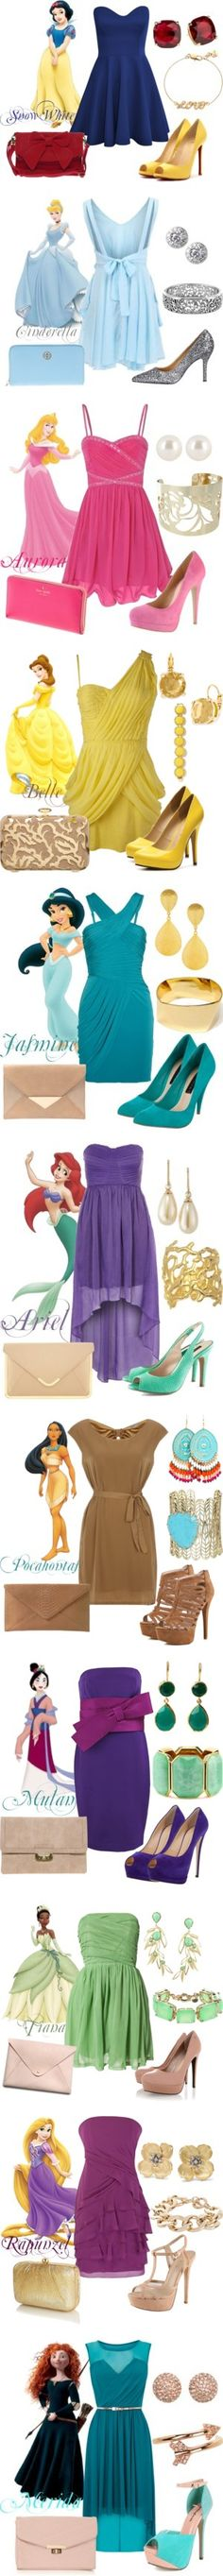 """Disney Princess Prom Outfits"" by natihasi on Polyvore      www.facebook.com/MTTMelissa"